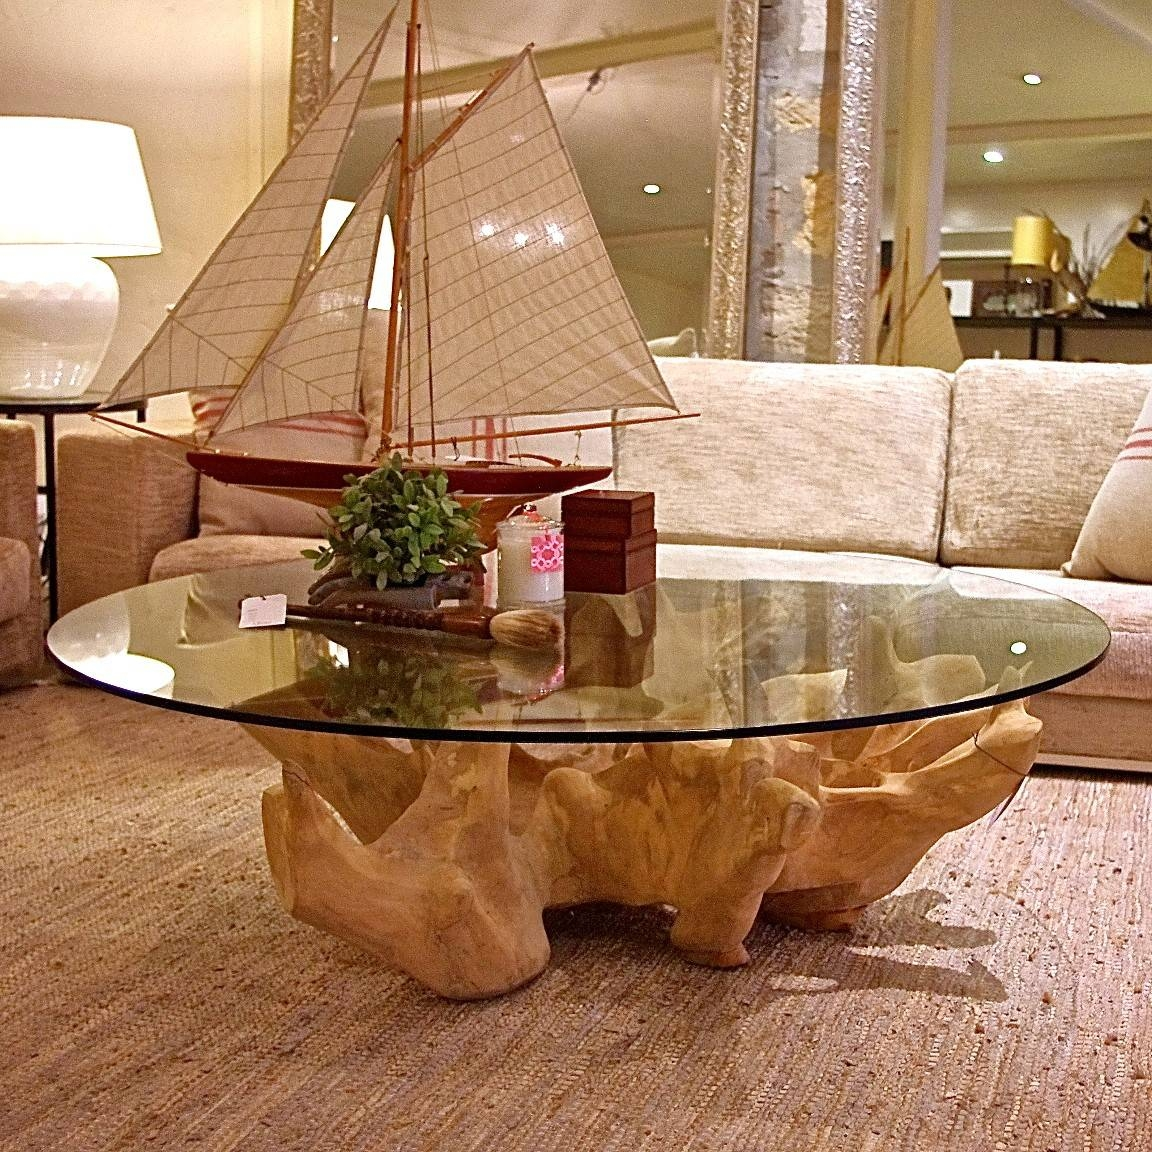 Furniture. Glamorous Wood Trunk Coffee Table Ideas: Brown intended for Wooden Trunks Coffee Tables (Image 9 of 30)